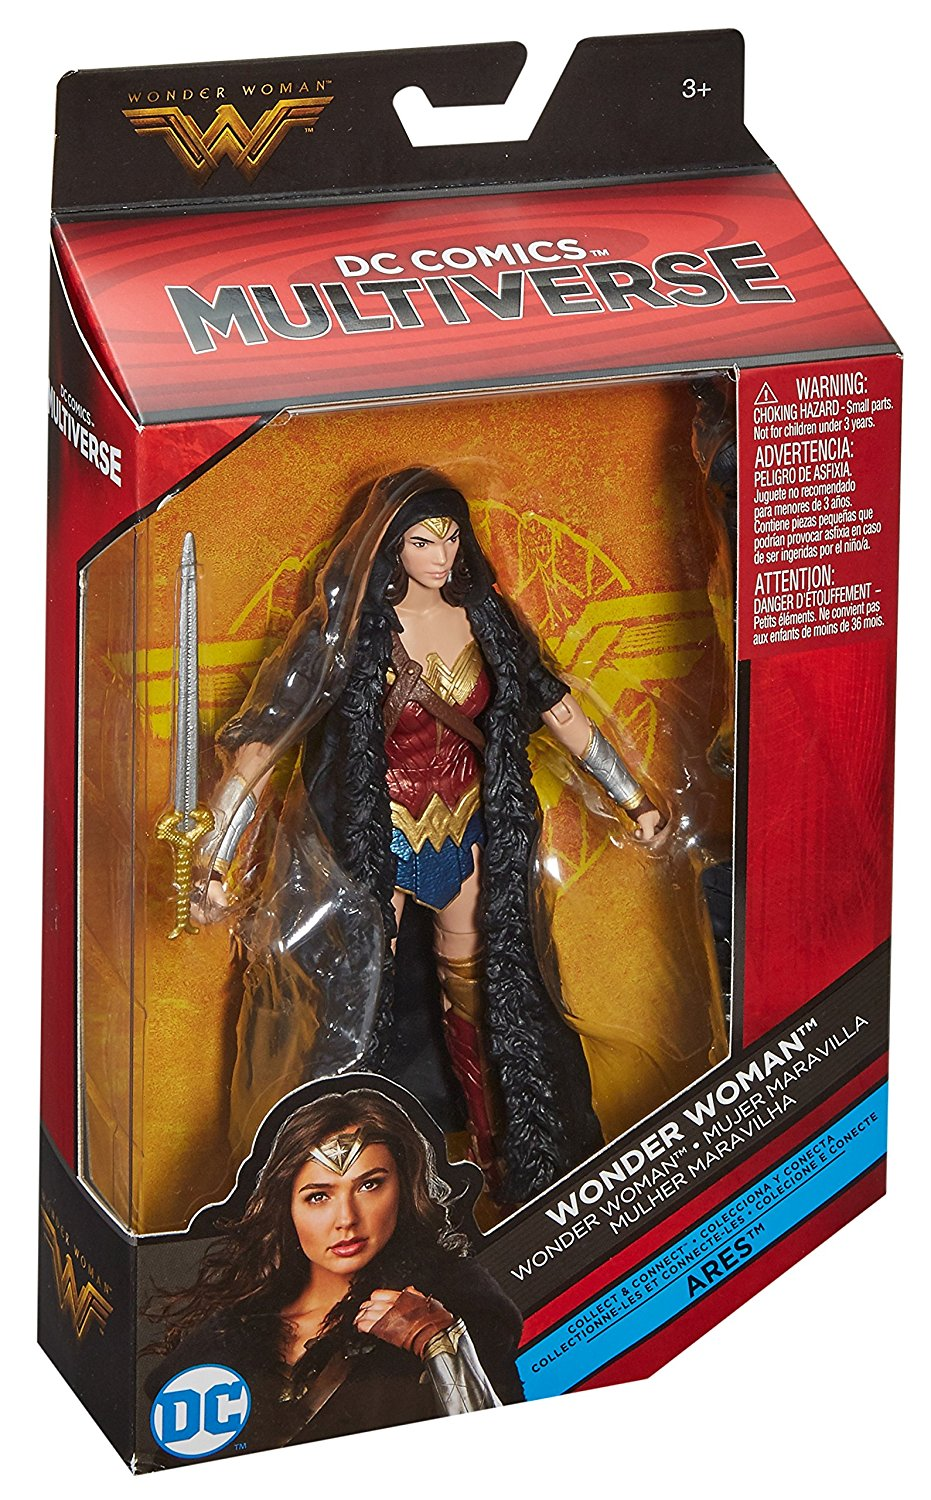 Original Garage Kit 6'' Figurine DC Comics Multiverse Wonder Woman Caped Toy Collectible Action Figure Doll Model Toy Gifts dc super hero girls wonder woman 9 training pvc action figure doll collectible model toy christmas gifts a162